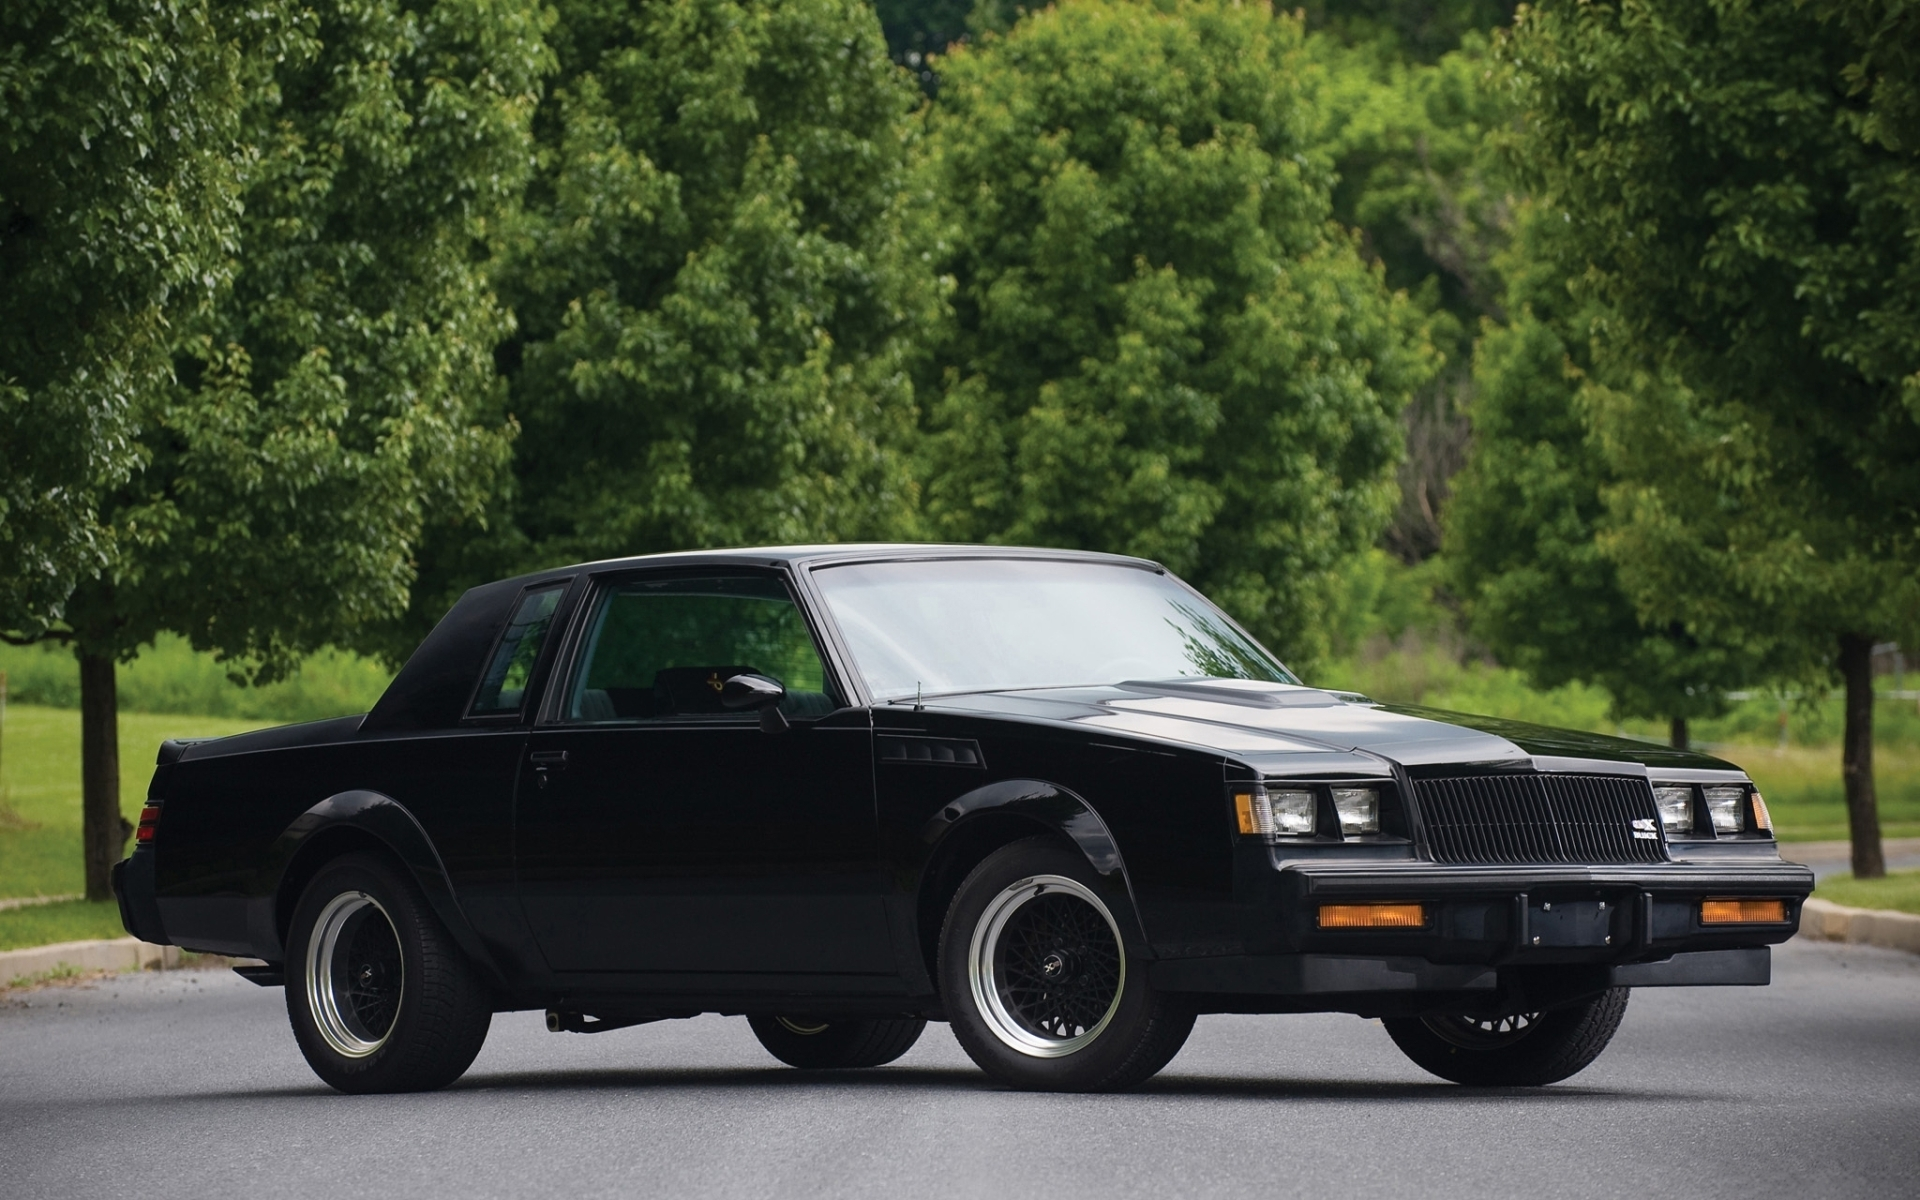 high quality image of buick gnx grand national photo of. Black Bedroom Furniture Sets. Home Design Ideas